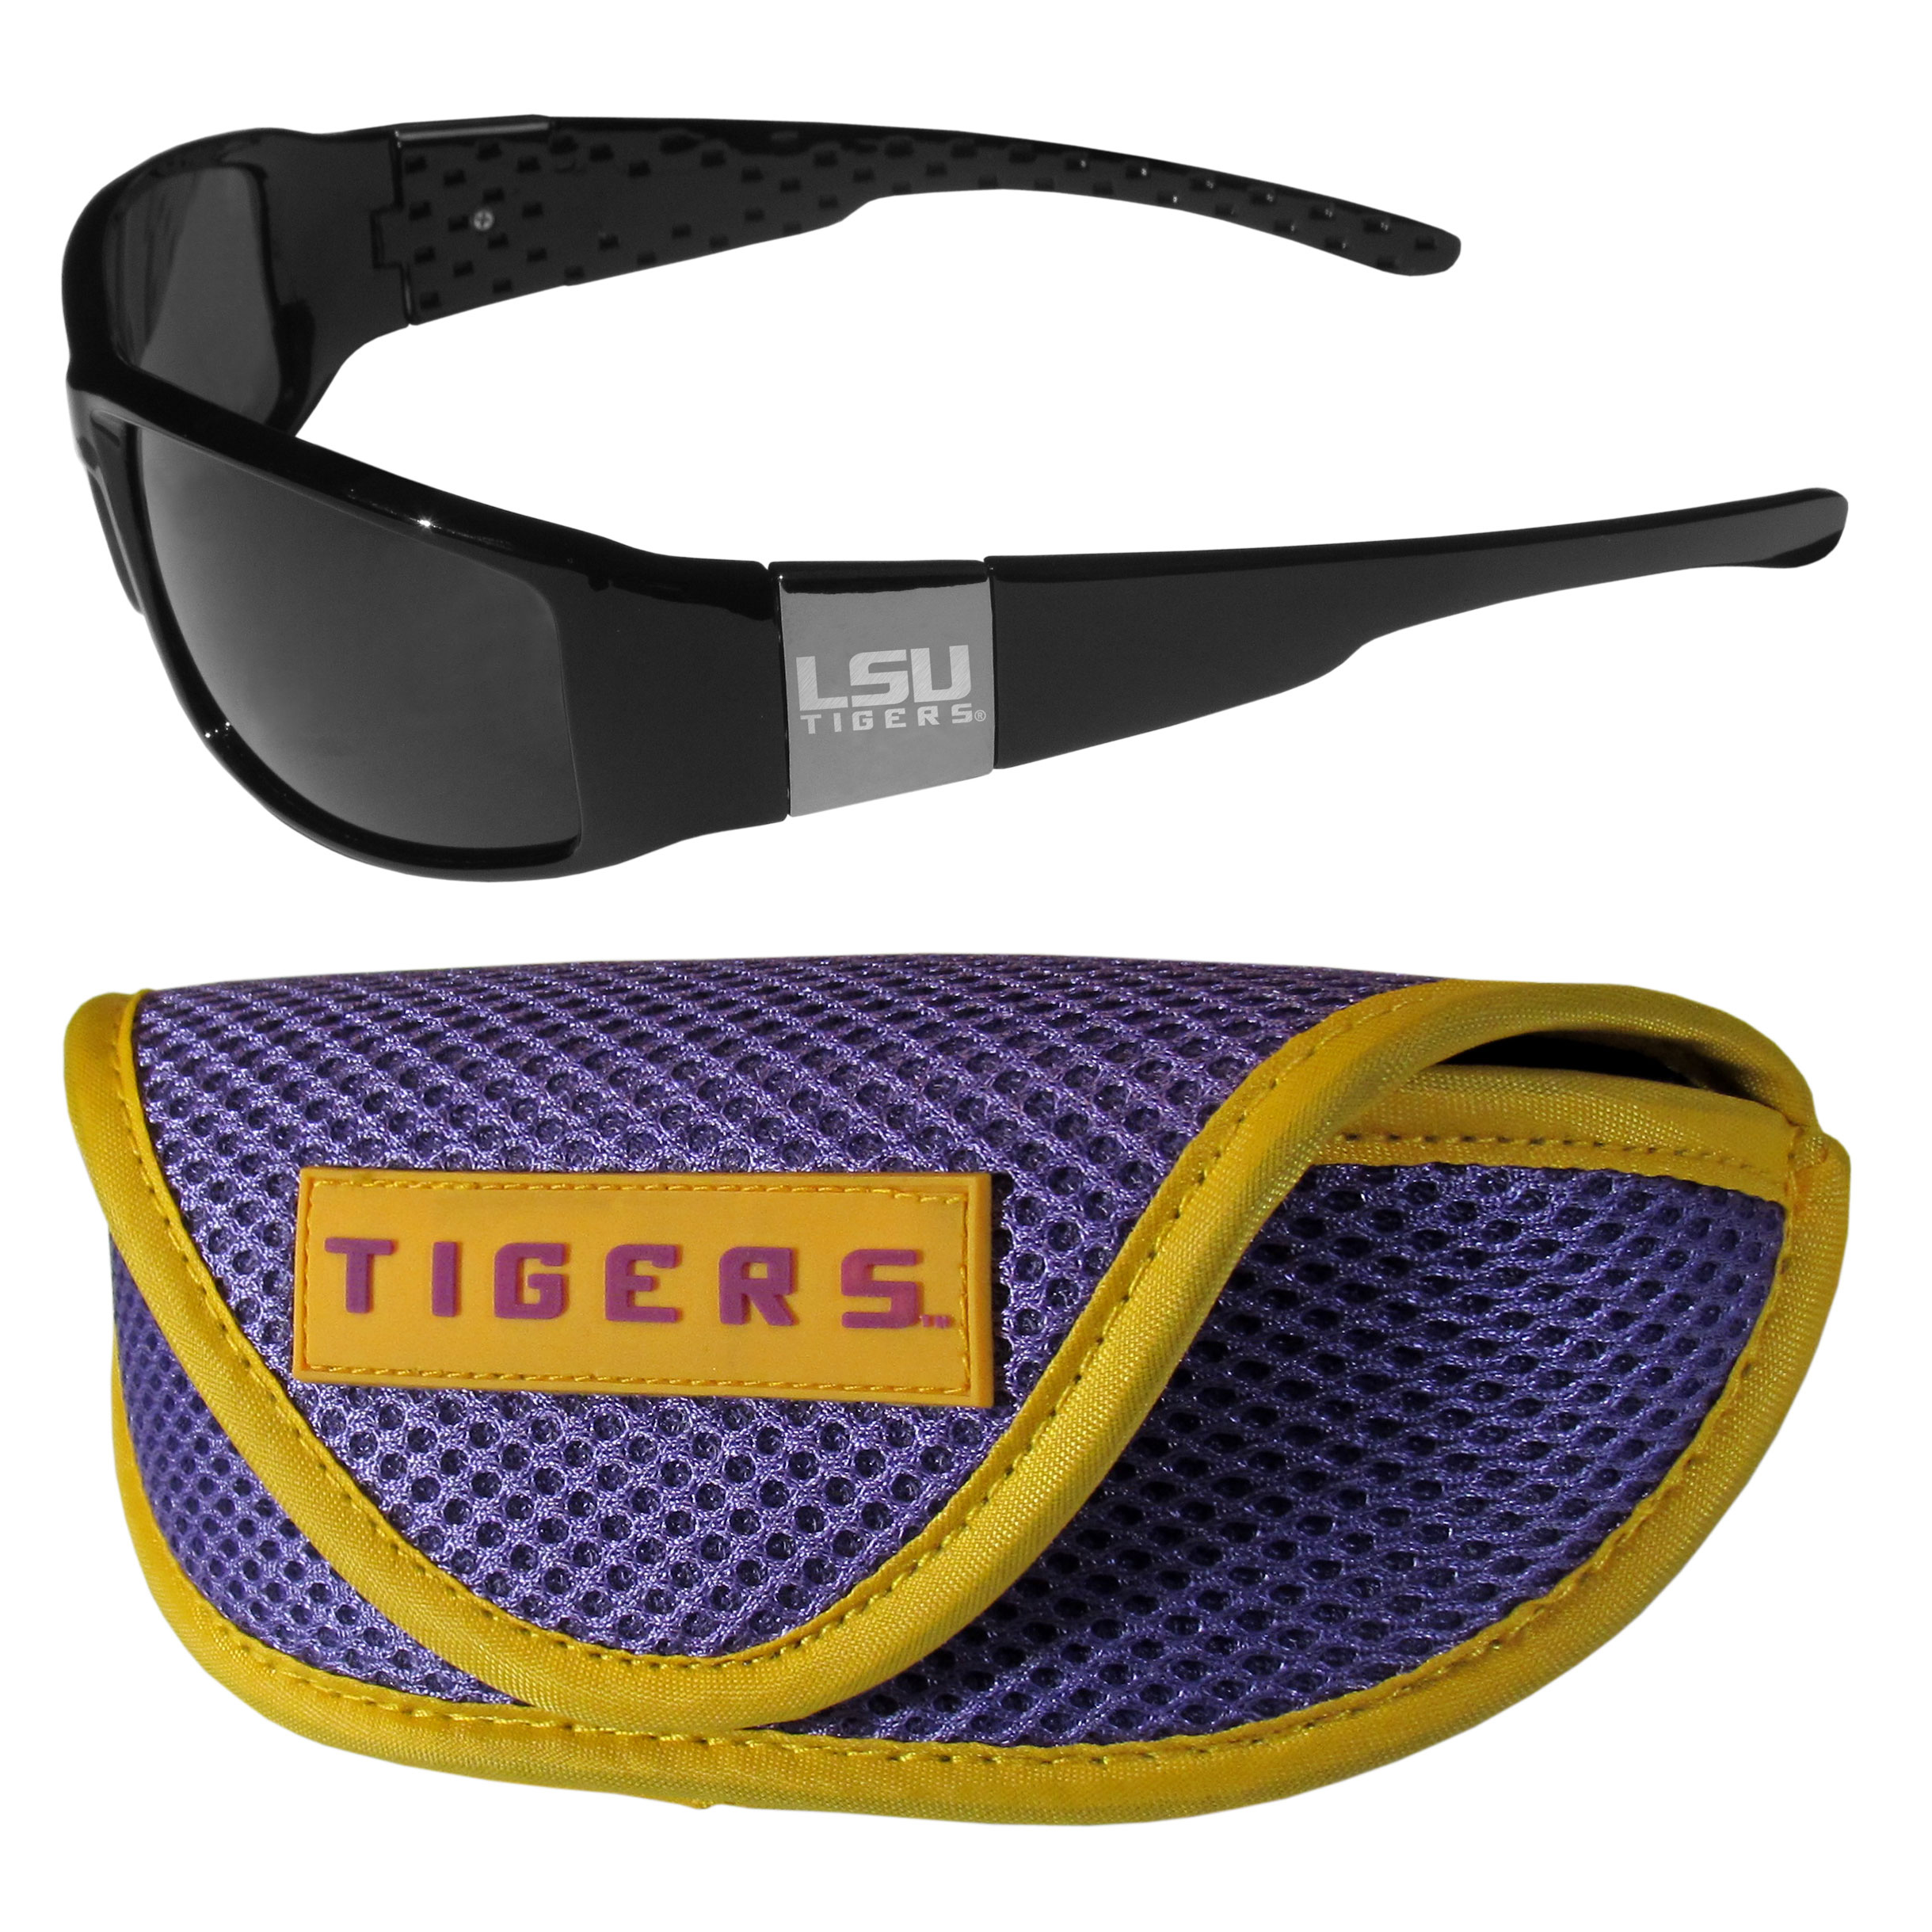 LSU Tigers Chrome Wrap Sunglasses and Sport Carrying Case - These designer inspired frames have a sleek look in all black with high-polish chrome LSU Tigers shields on each arm with an etched logo. The shades are perfect any outdoor activity like; golfing, driving, hiking, fishing or cheering on the team at a tailgating event or an at home game day BBQ with a lens rating of 100% UVA/UVB for maximum UV protection. The high-quality frames are as durable as they are fashionable and with their classic look they are perfect fan accessory that can be worn everyday for every occasion. The shades come with a zippered hard shell case to keep your sunglasses safe.